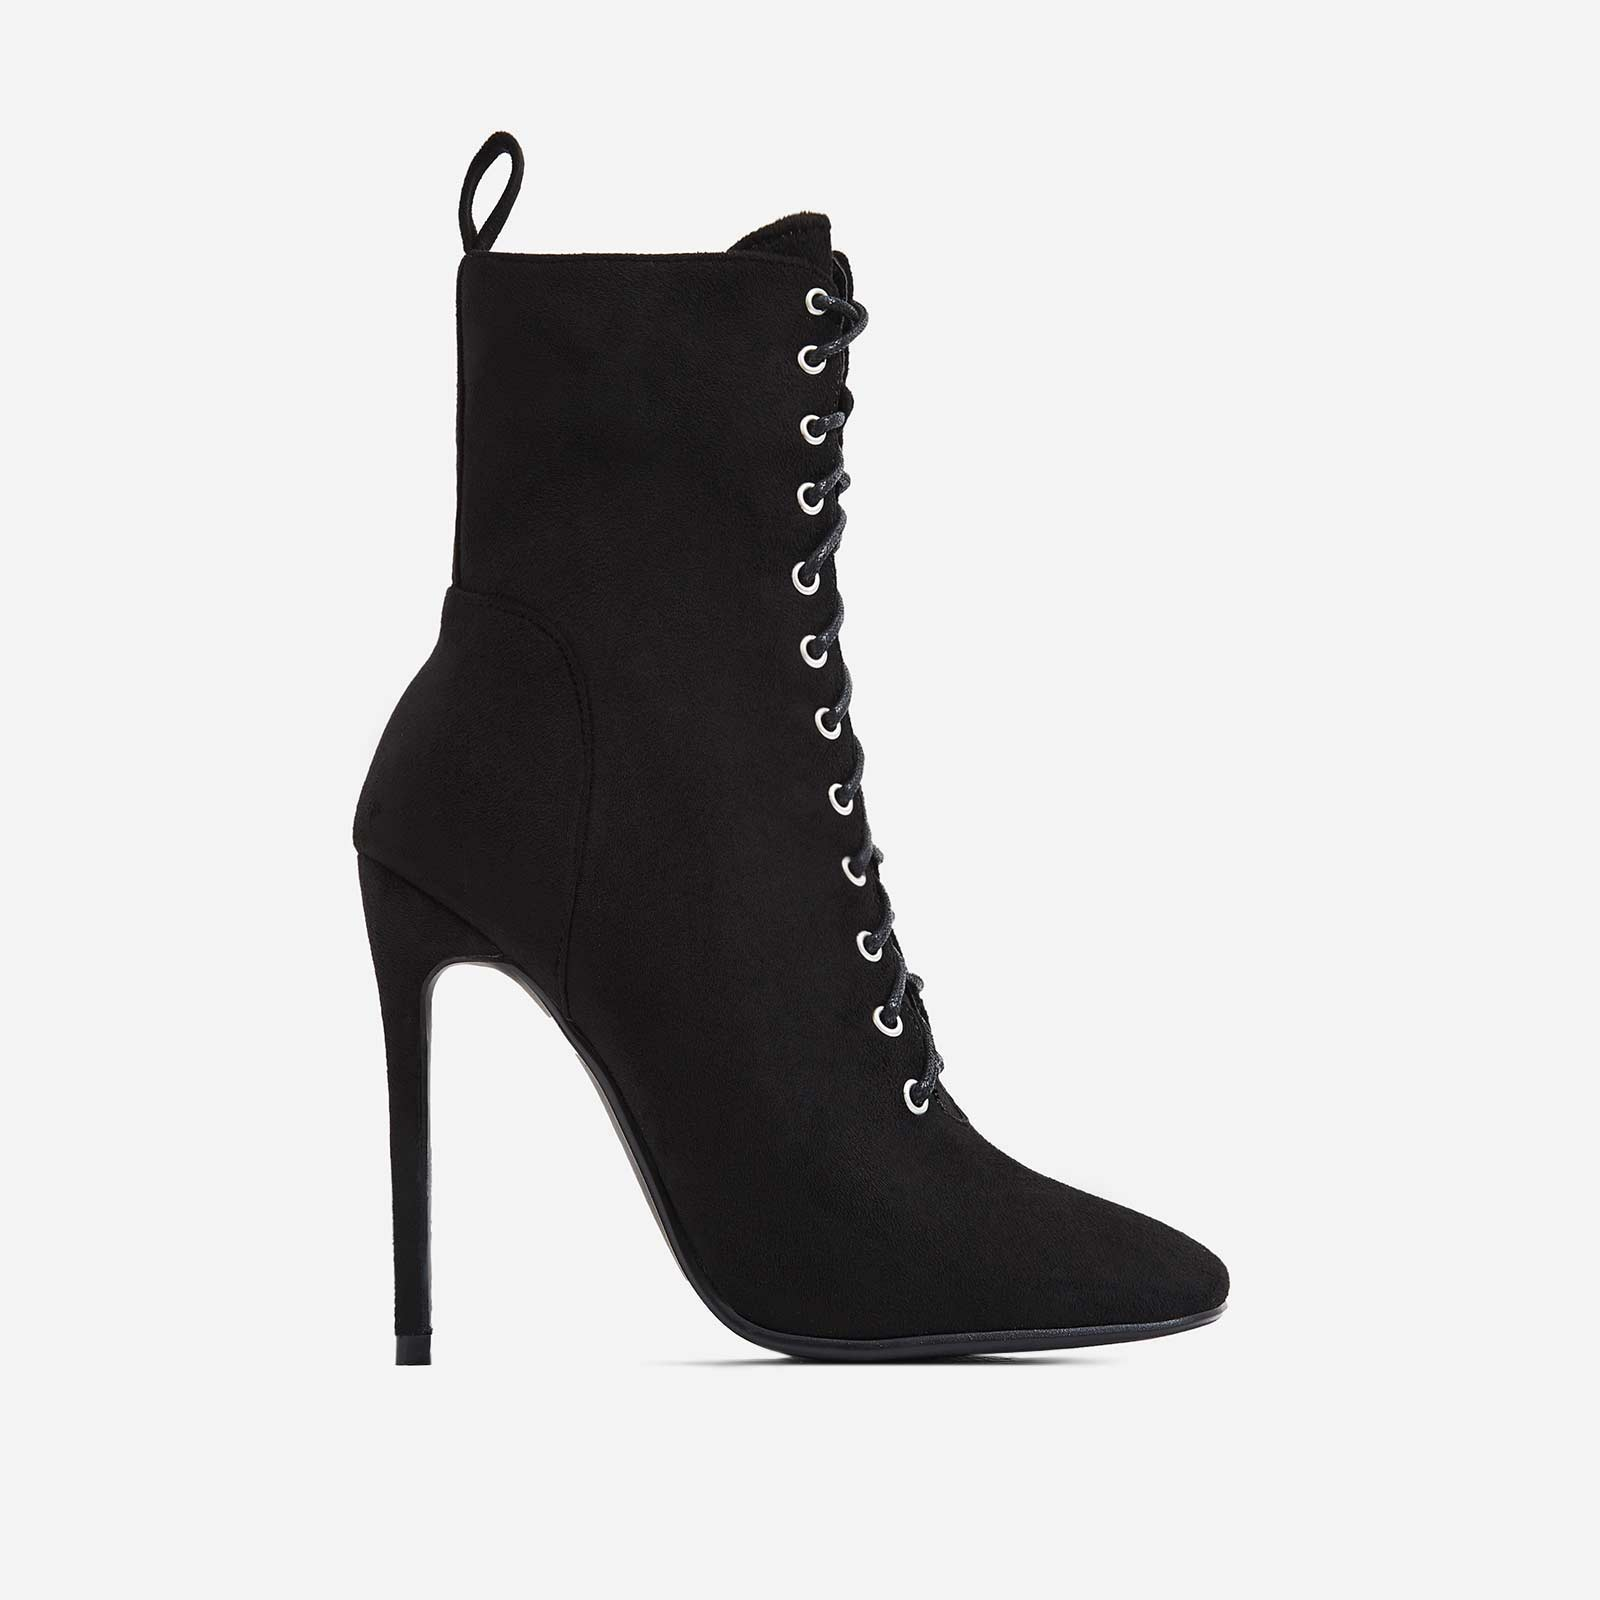 Onya Square Toe Lace Up Ankle Boot In Black Faux Suede